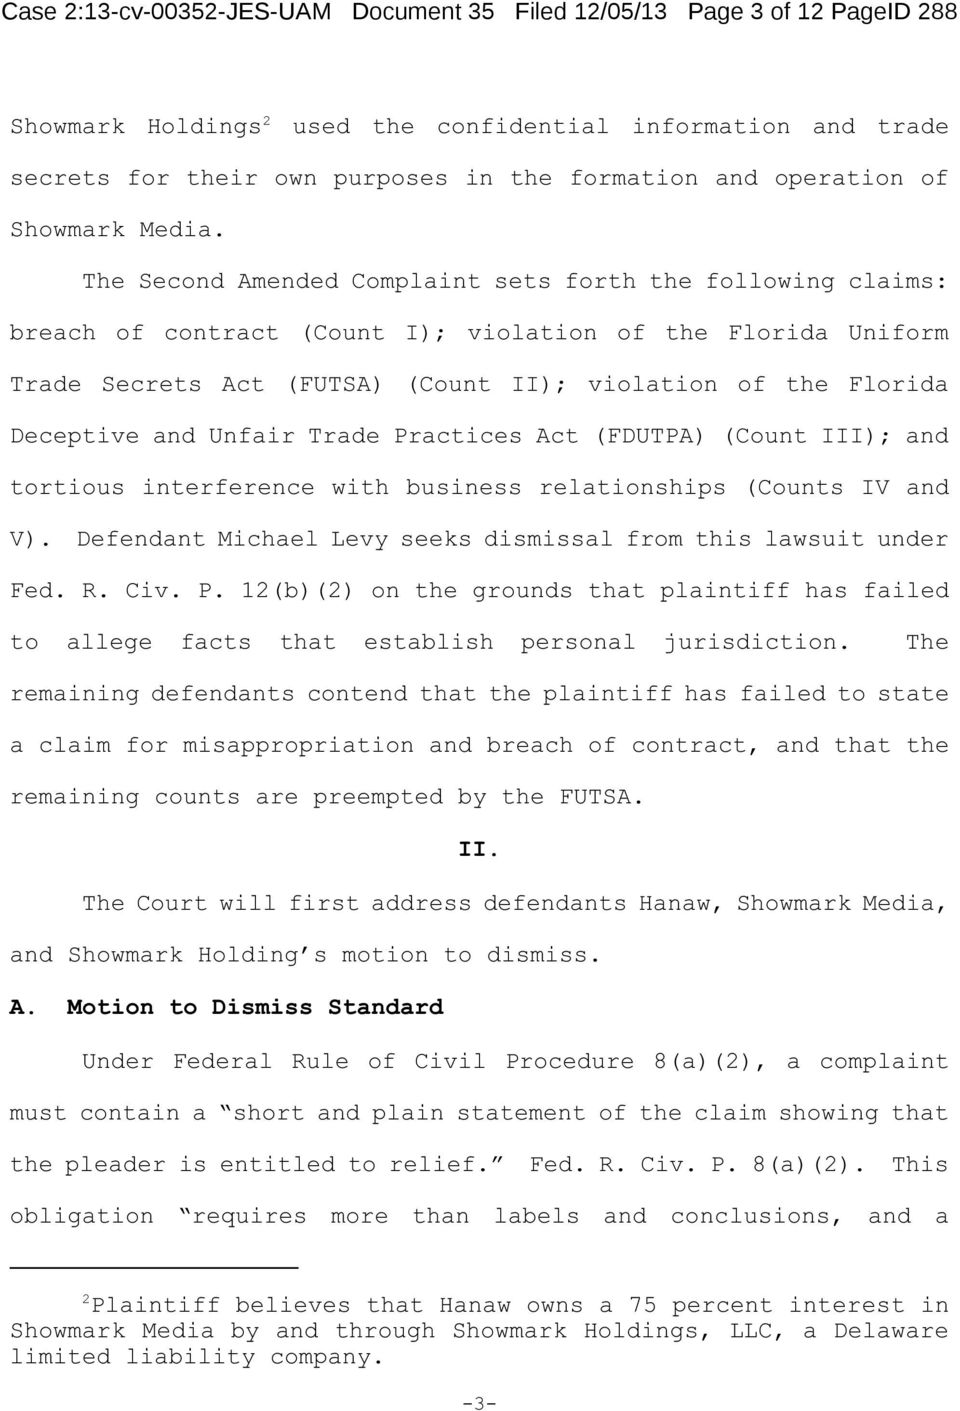 The Second Amended Complaint sets forth the following claims: breach of contract (Count I); violation of the Florida Uniform Trade Secrets Act (FUTSA) (Count II); violation of the Florida Deceptive